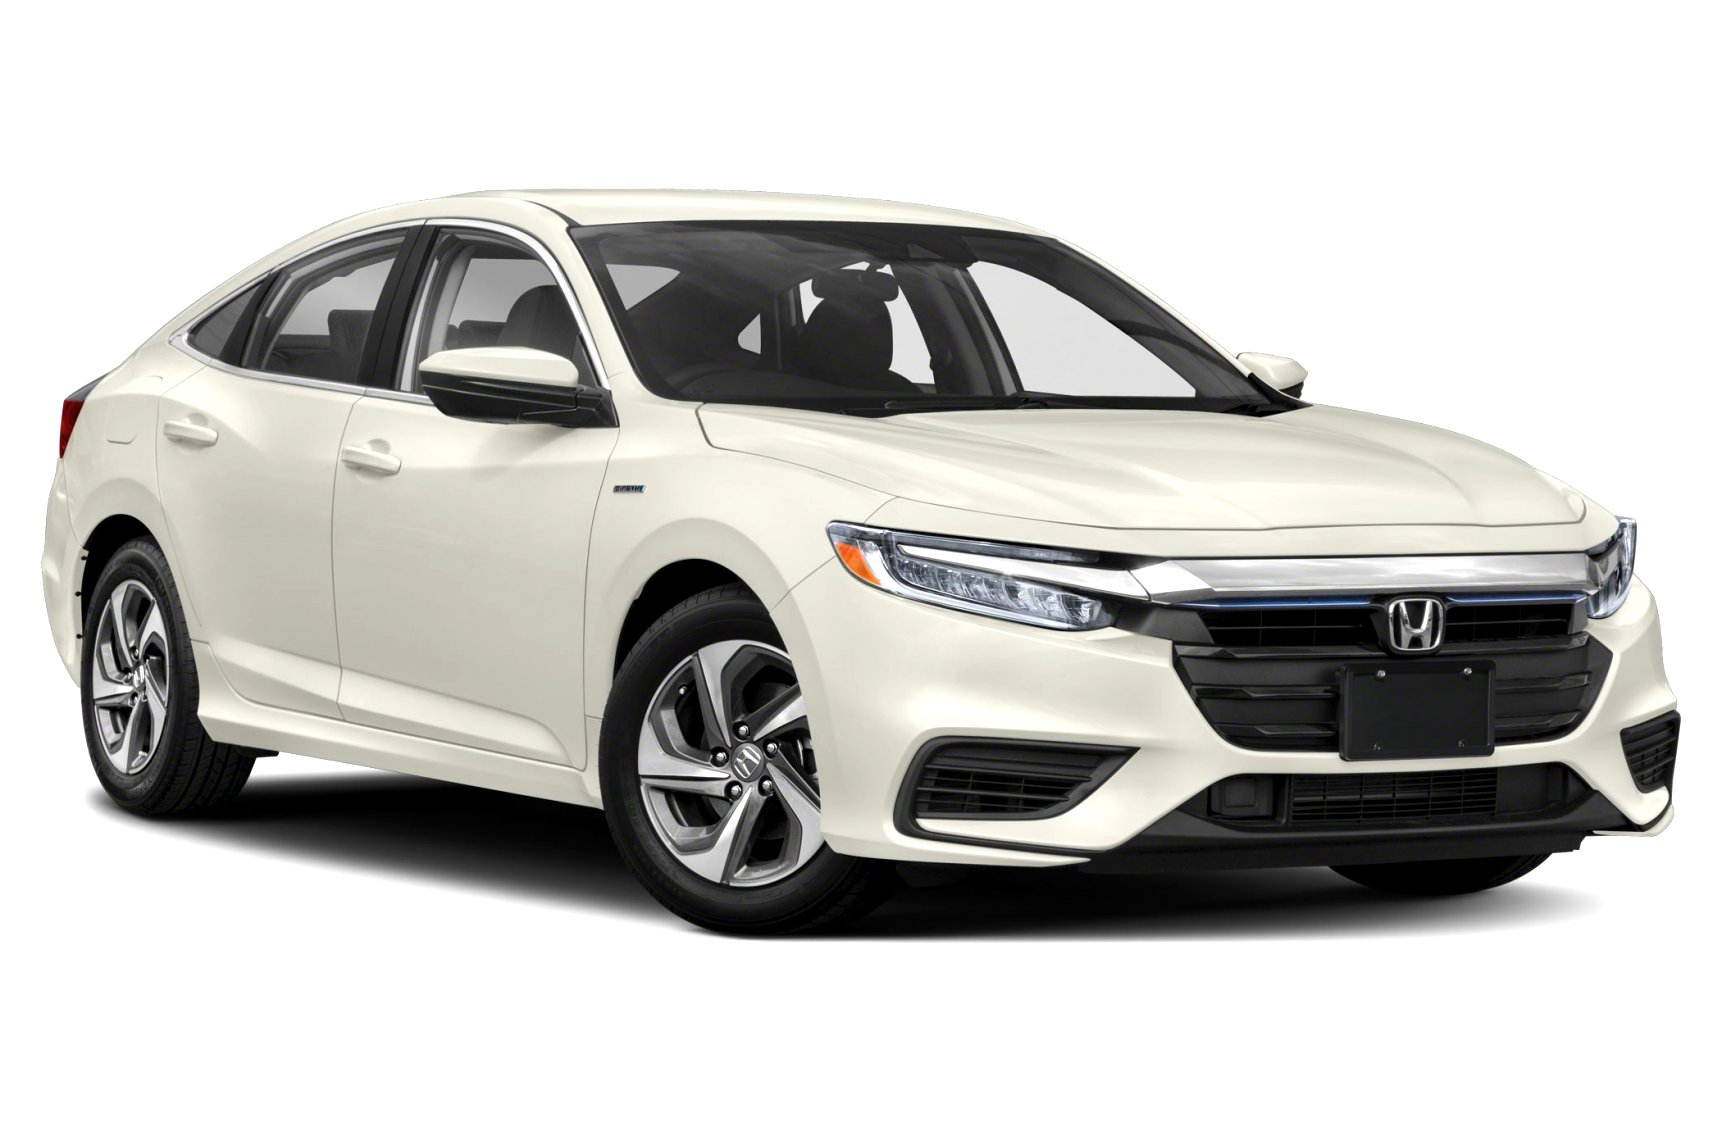 honda insight 2020 review Photos